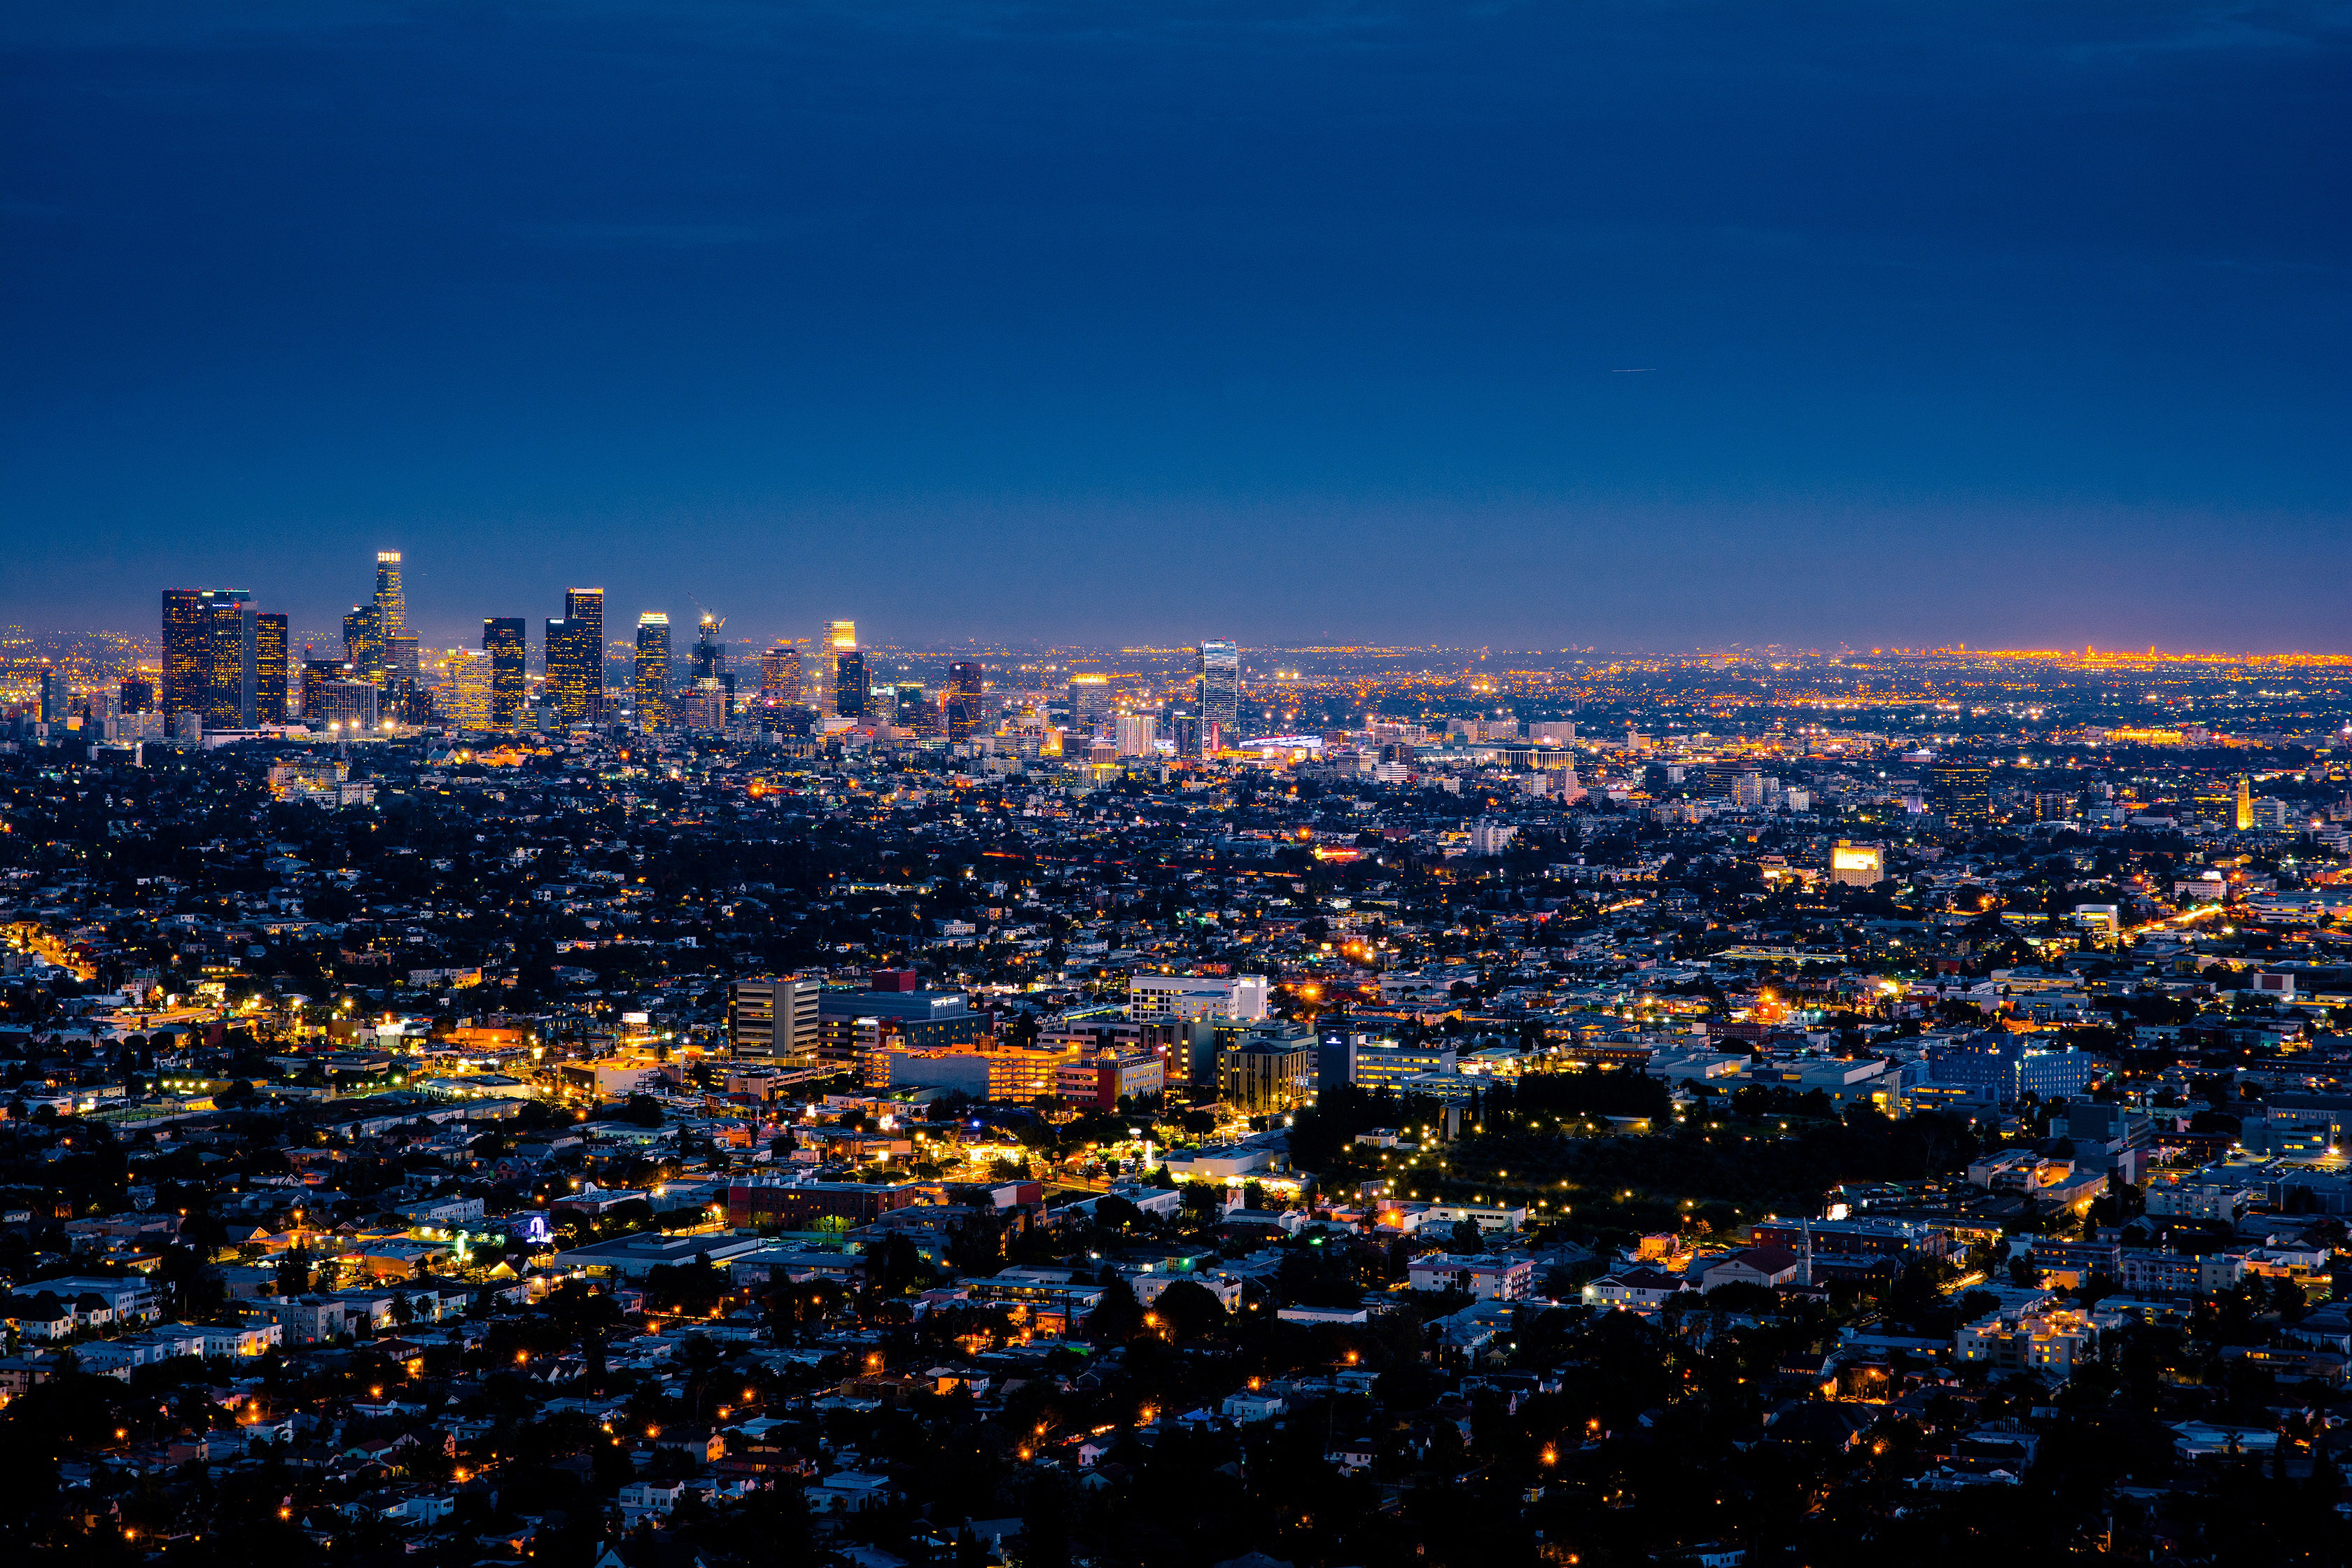 night-lights-in-los-angeles-california-cityscape